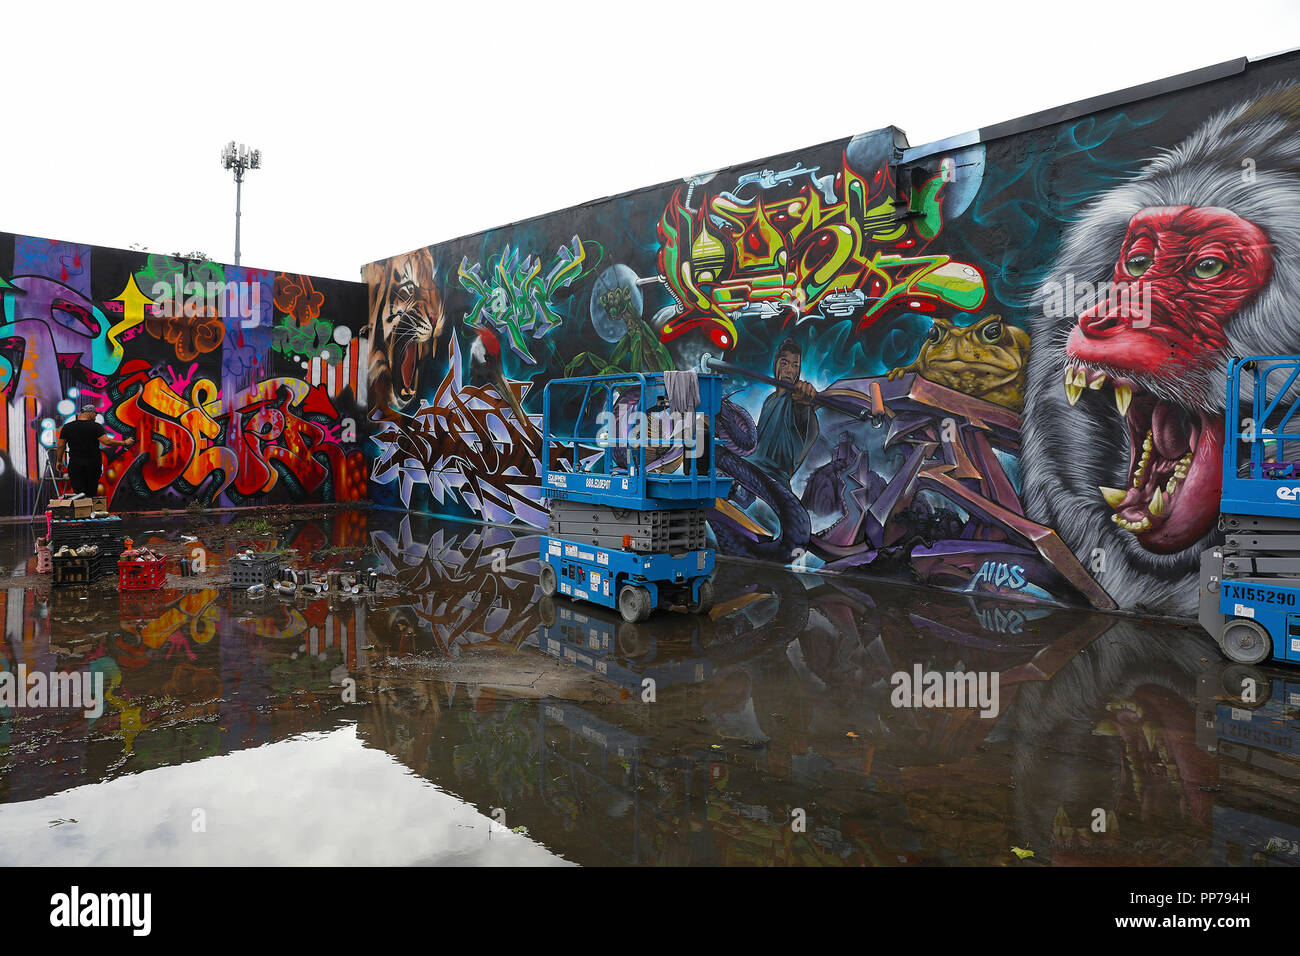 Houston 23rd sep 2018 photo taken on sept 23 2018 shows the murals and graffiti on the walls in greater northside houston area the united states